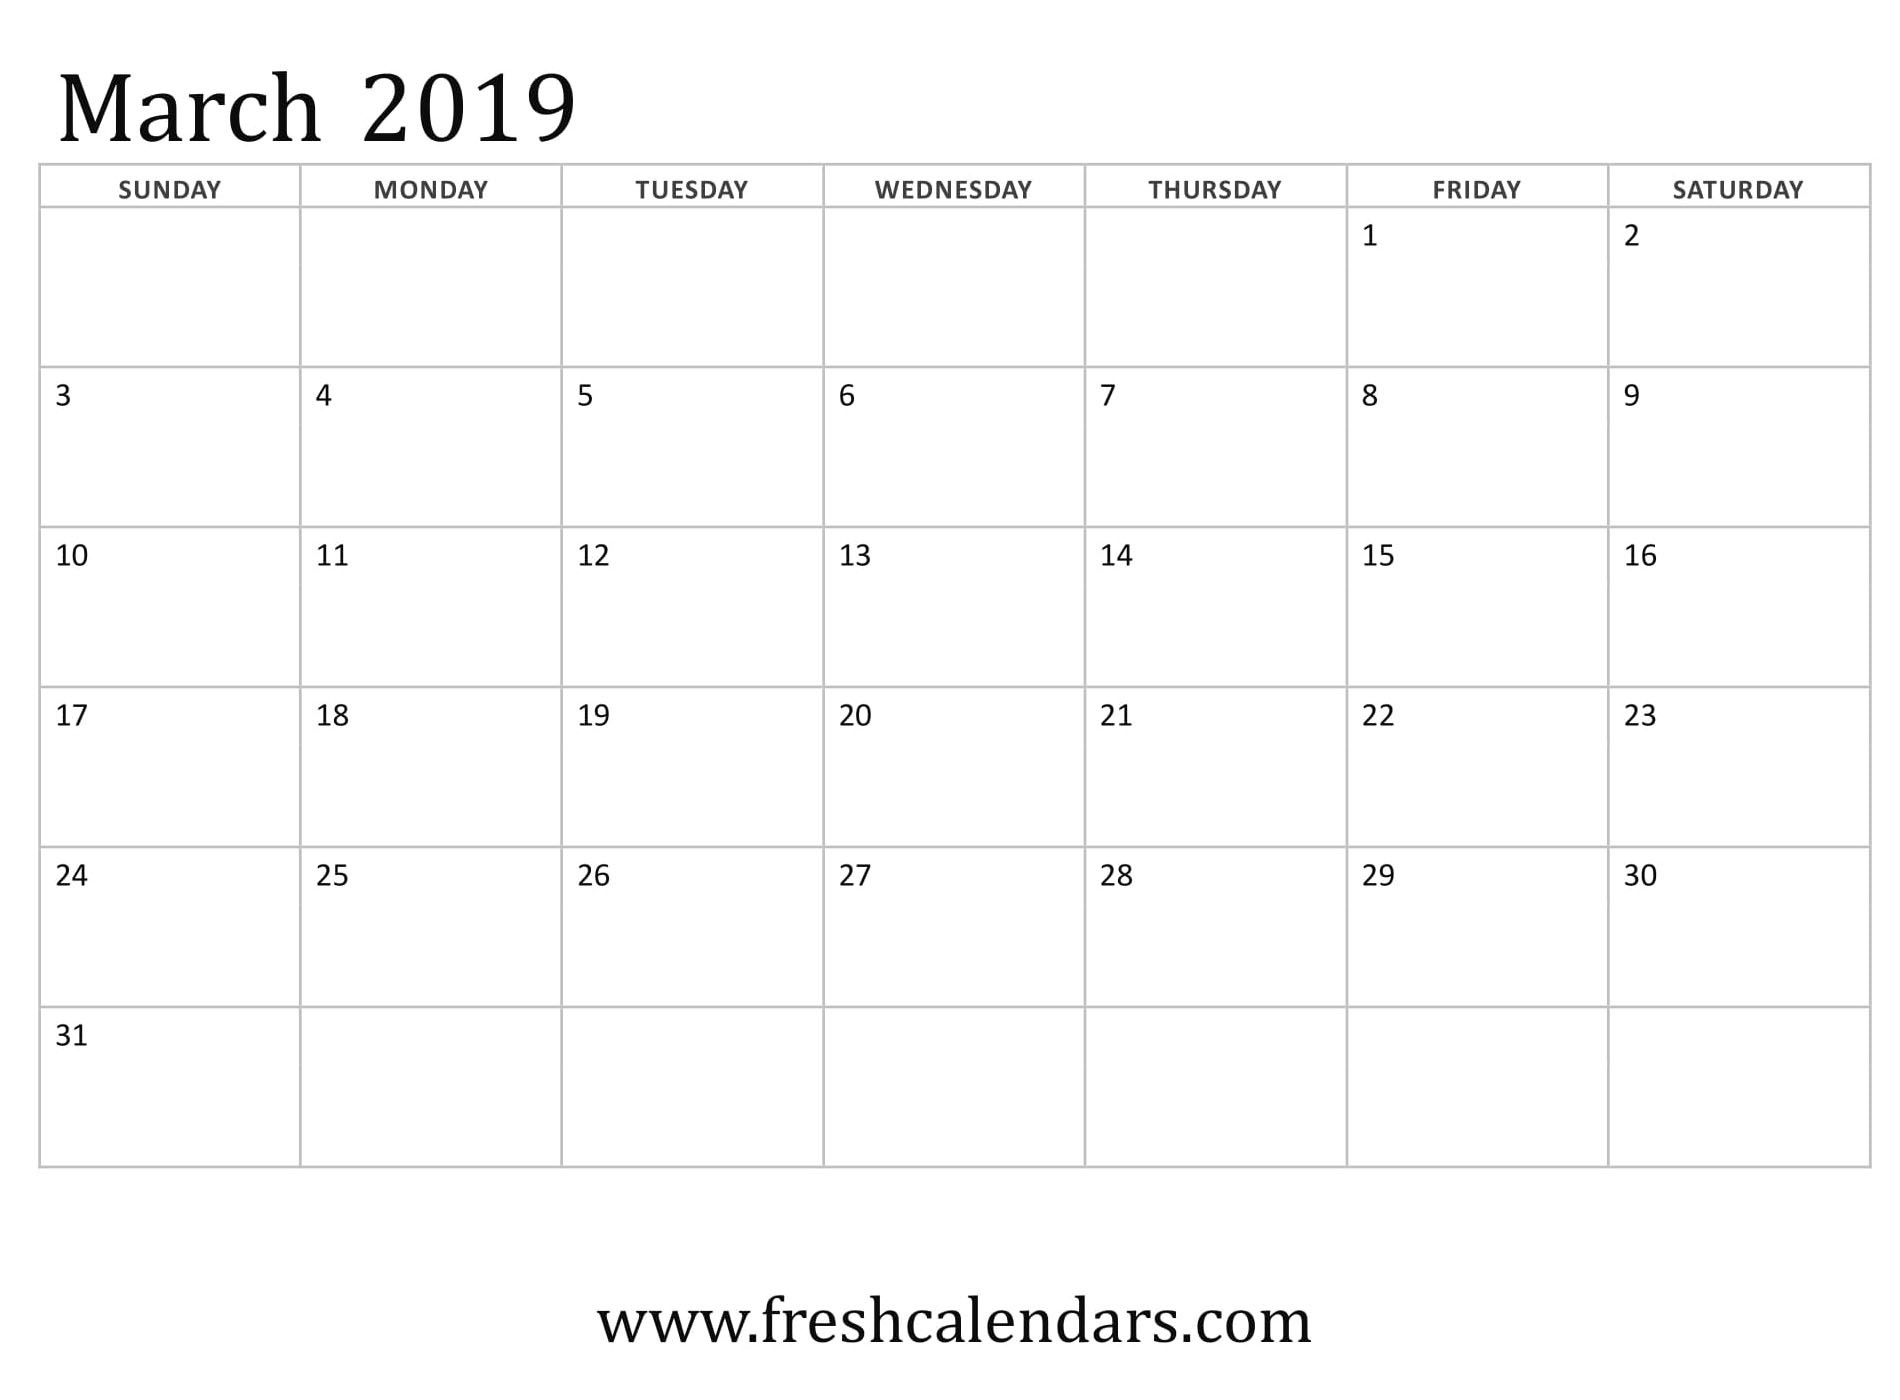 March Calendar 2019 Actual March 2019 Printable Calendars Fresh Calendars Of March Calendar 2019 Más Populares February March Calendar 2019 2018 Printable Calendar Store